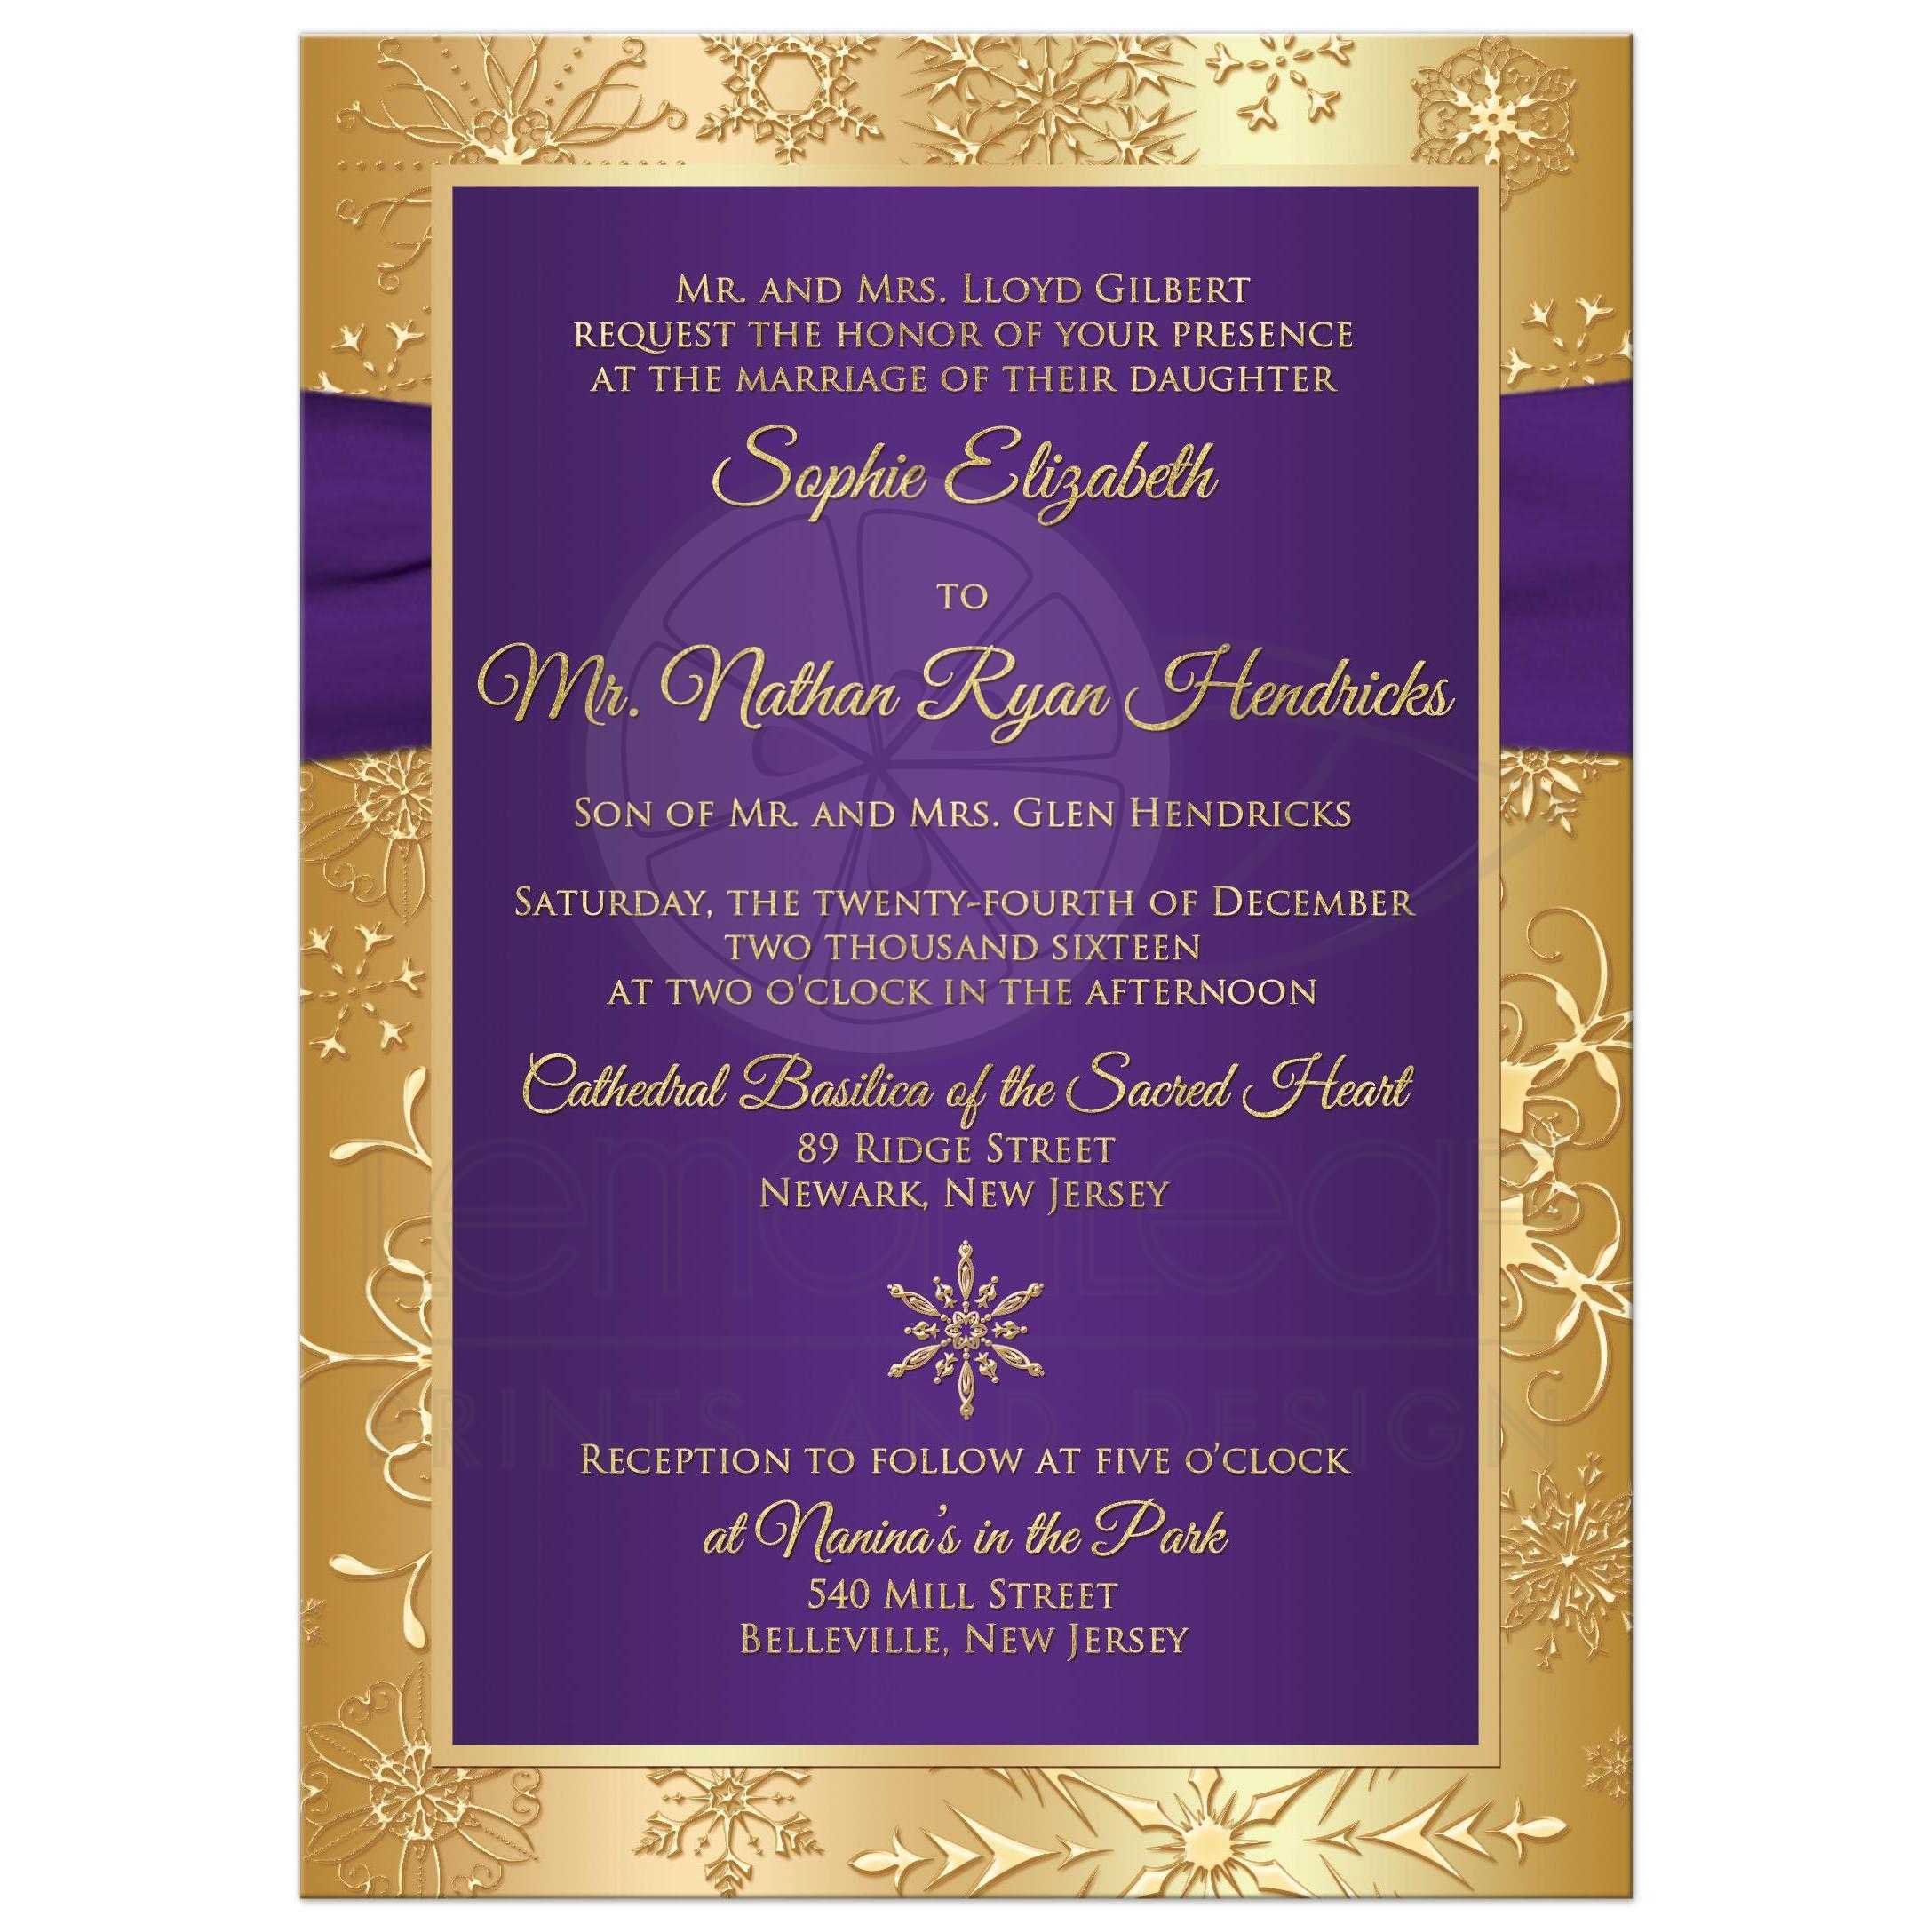 winter wedding invitation purple, gold snowflakes printed Purple Gold Wedding Invitations best purple and gold winter wedding invite with snowflakes, ribbon and jewel buckle brooch purple and gold wedding invitations